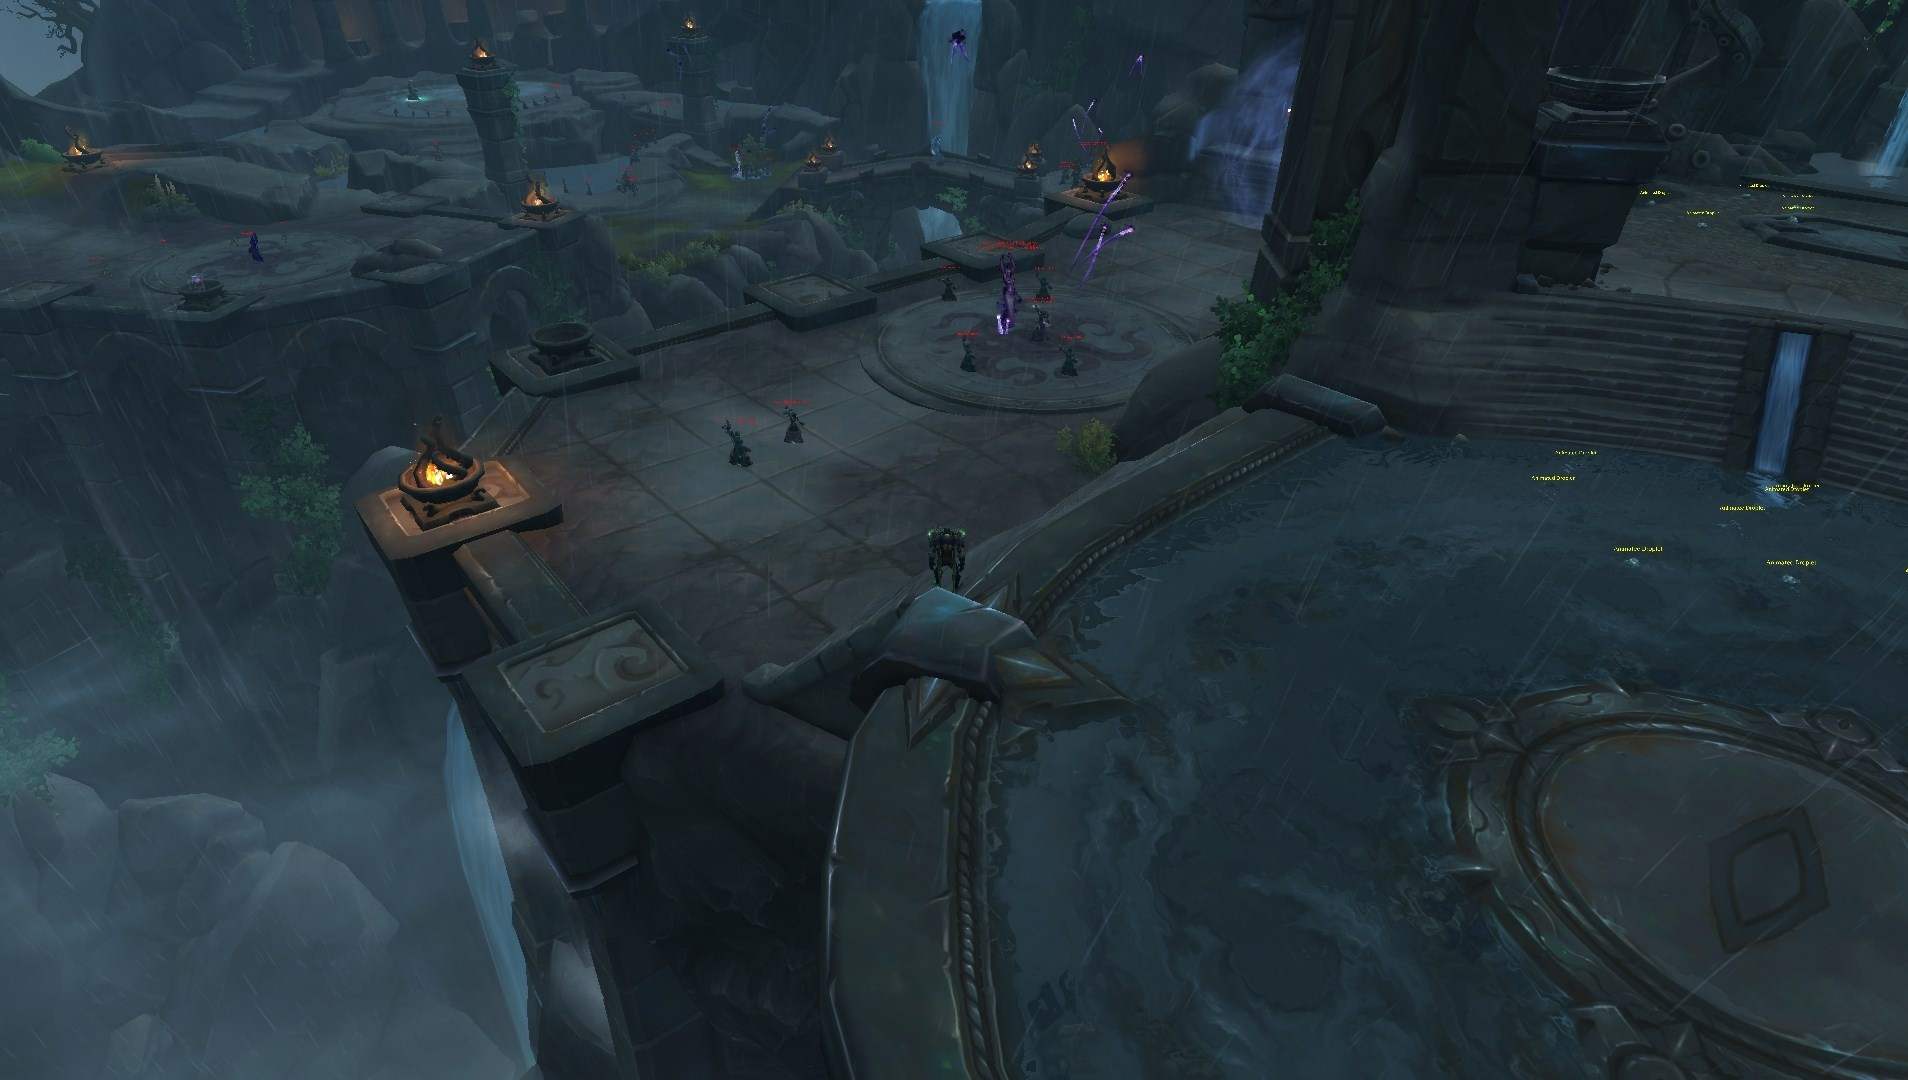 Season 3 Mythic+ Affix Beguiling and More Dungeon Tuning on PTR - Wowhead News